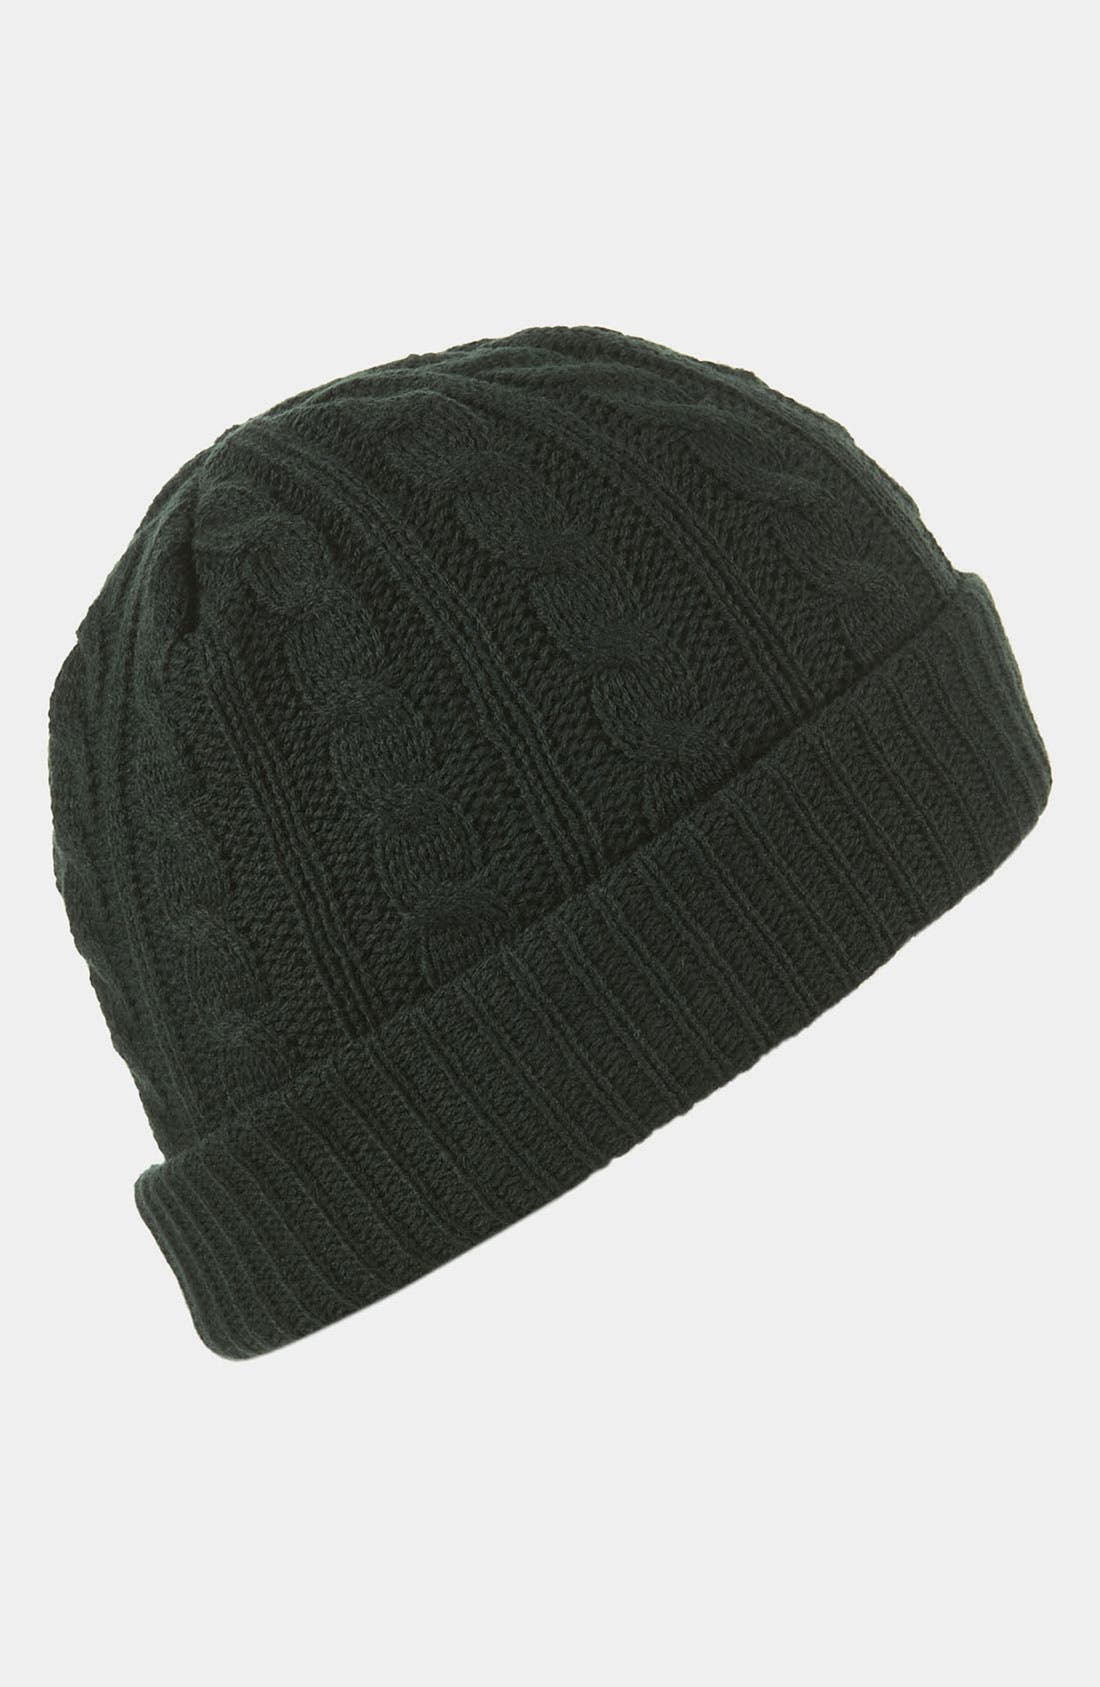 Alternate Image 1 Selected - Topman Cable Knit Cap